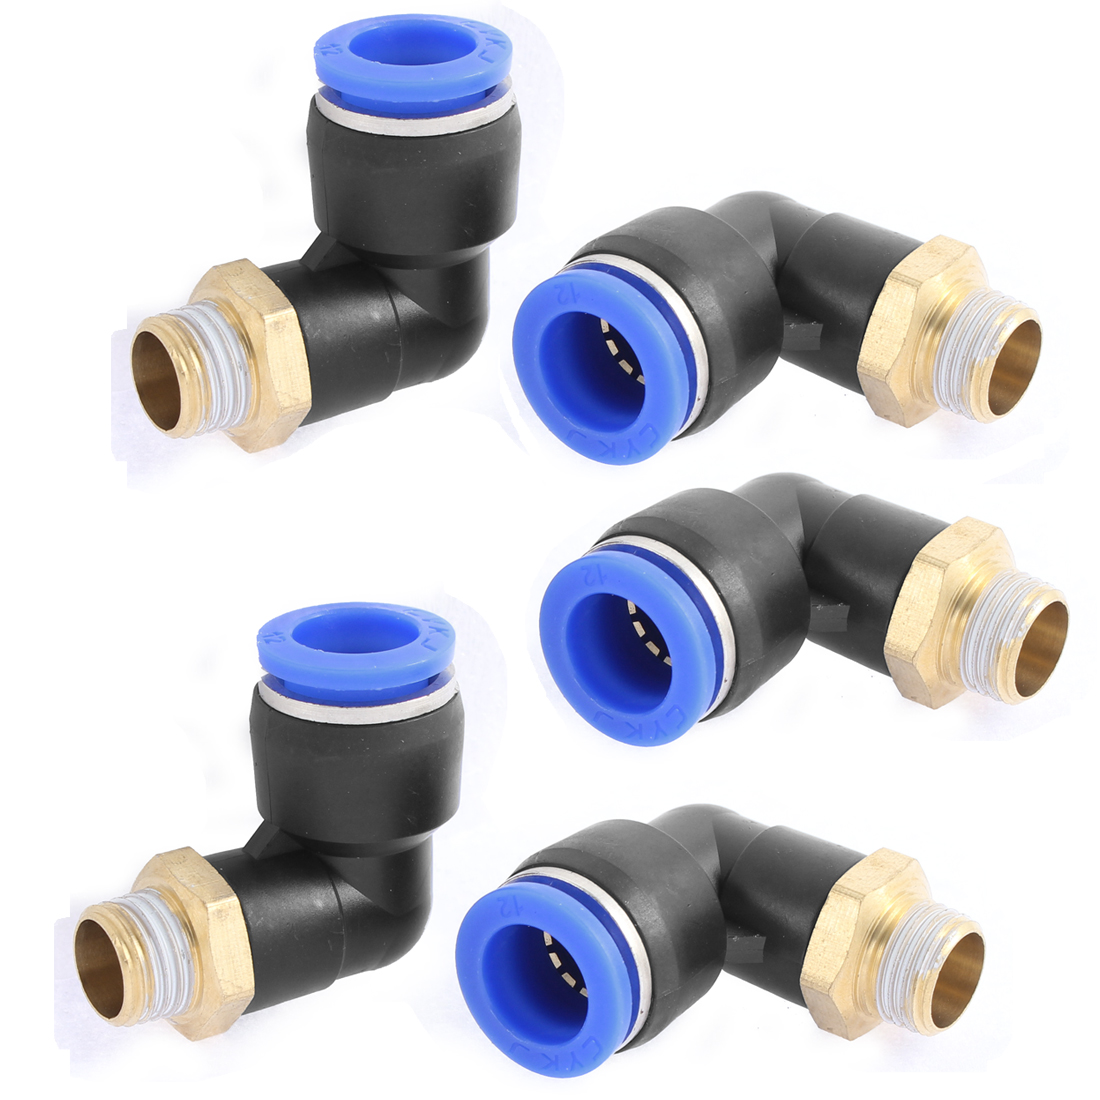 5 Pcs 1/4BSP Male to 12mm Tube Elbow Connectors Quick Connect Fittings PL12-02